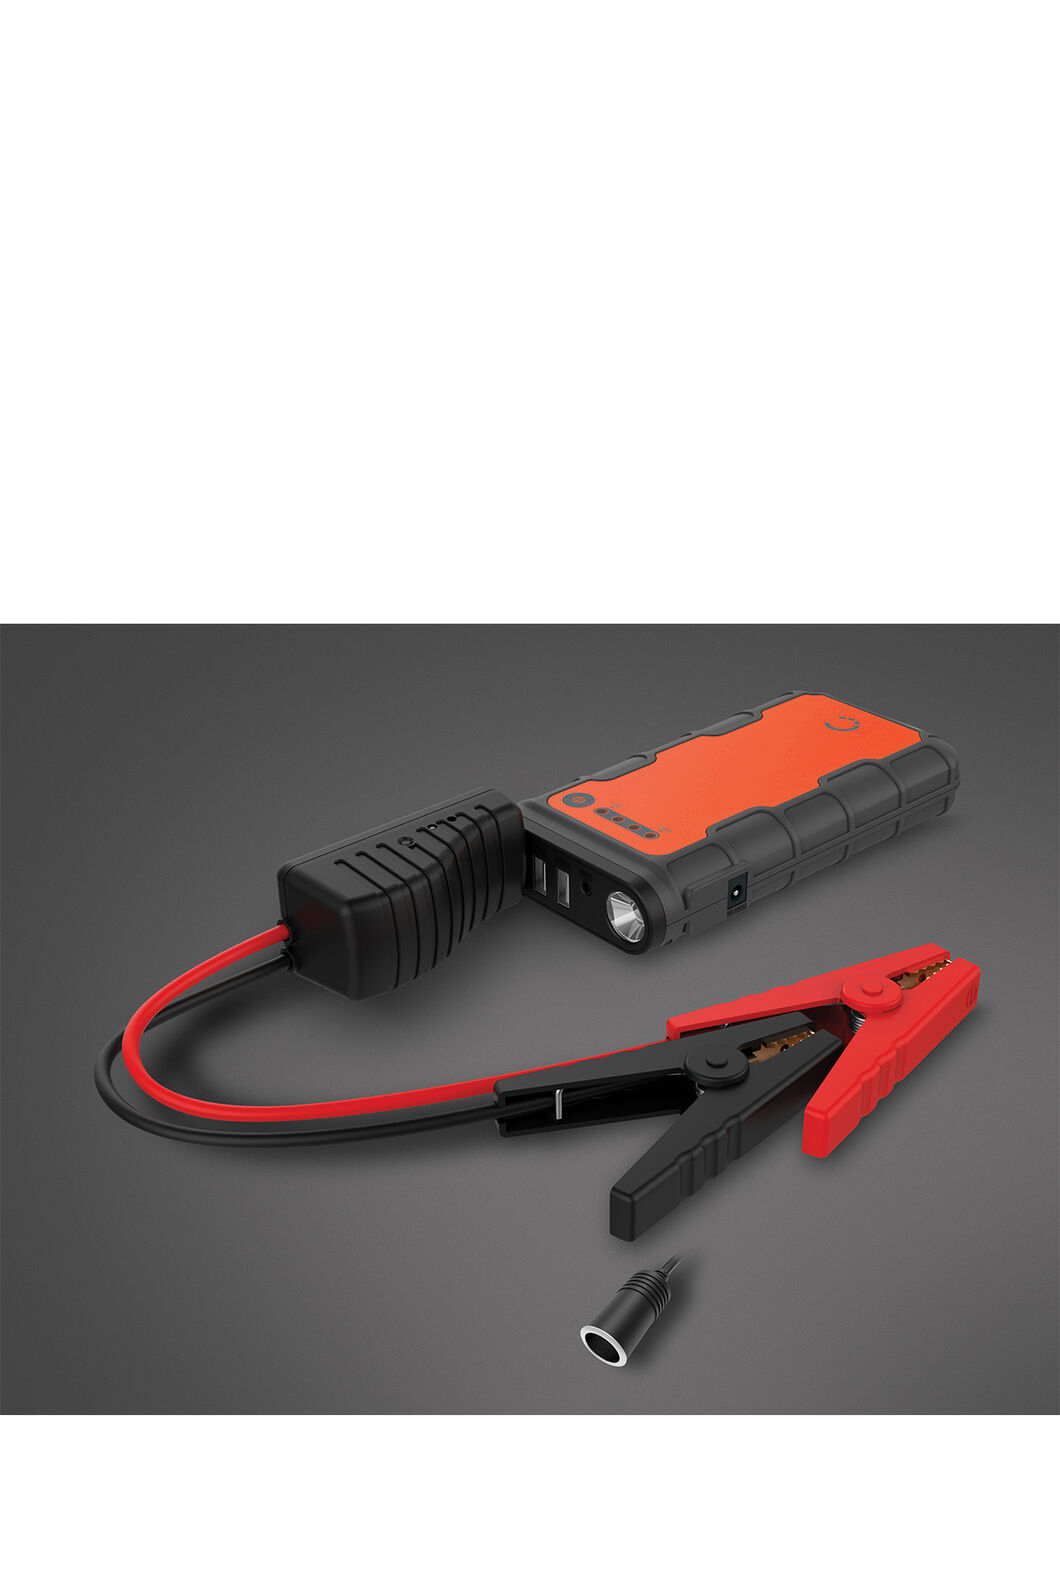 Cygnett ChargeUp Auto000 Jump Starter, None, hi-res